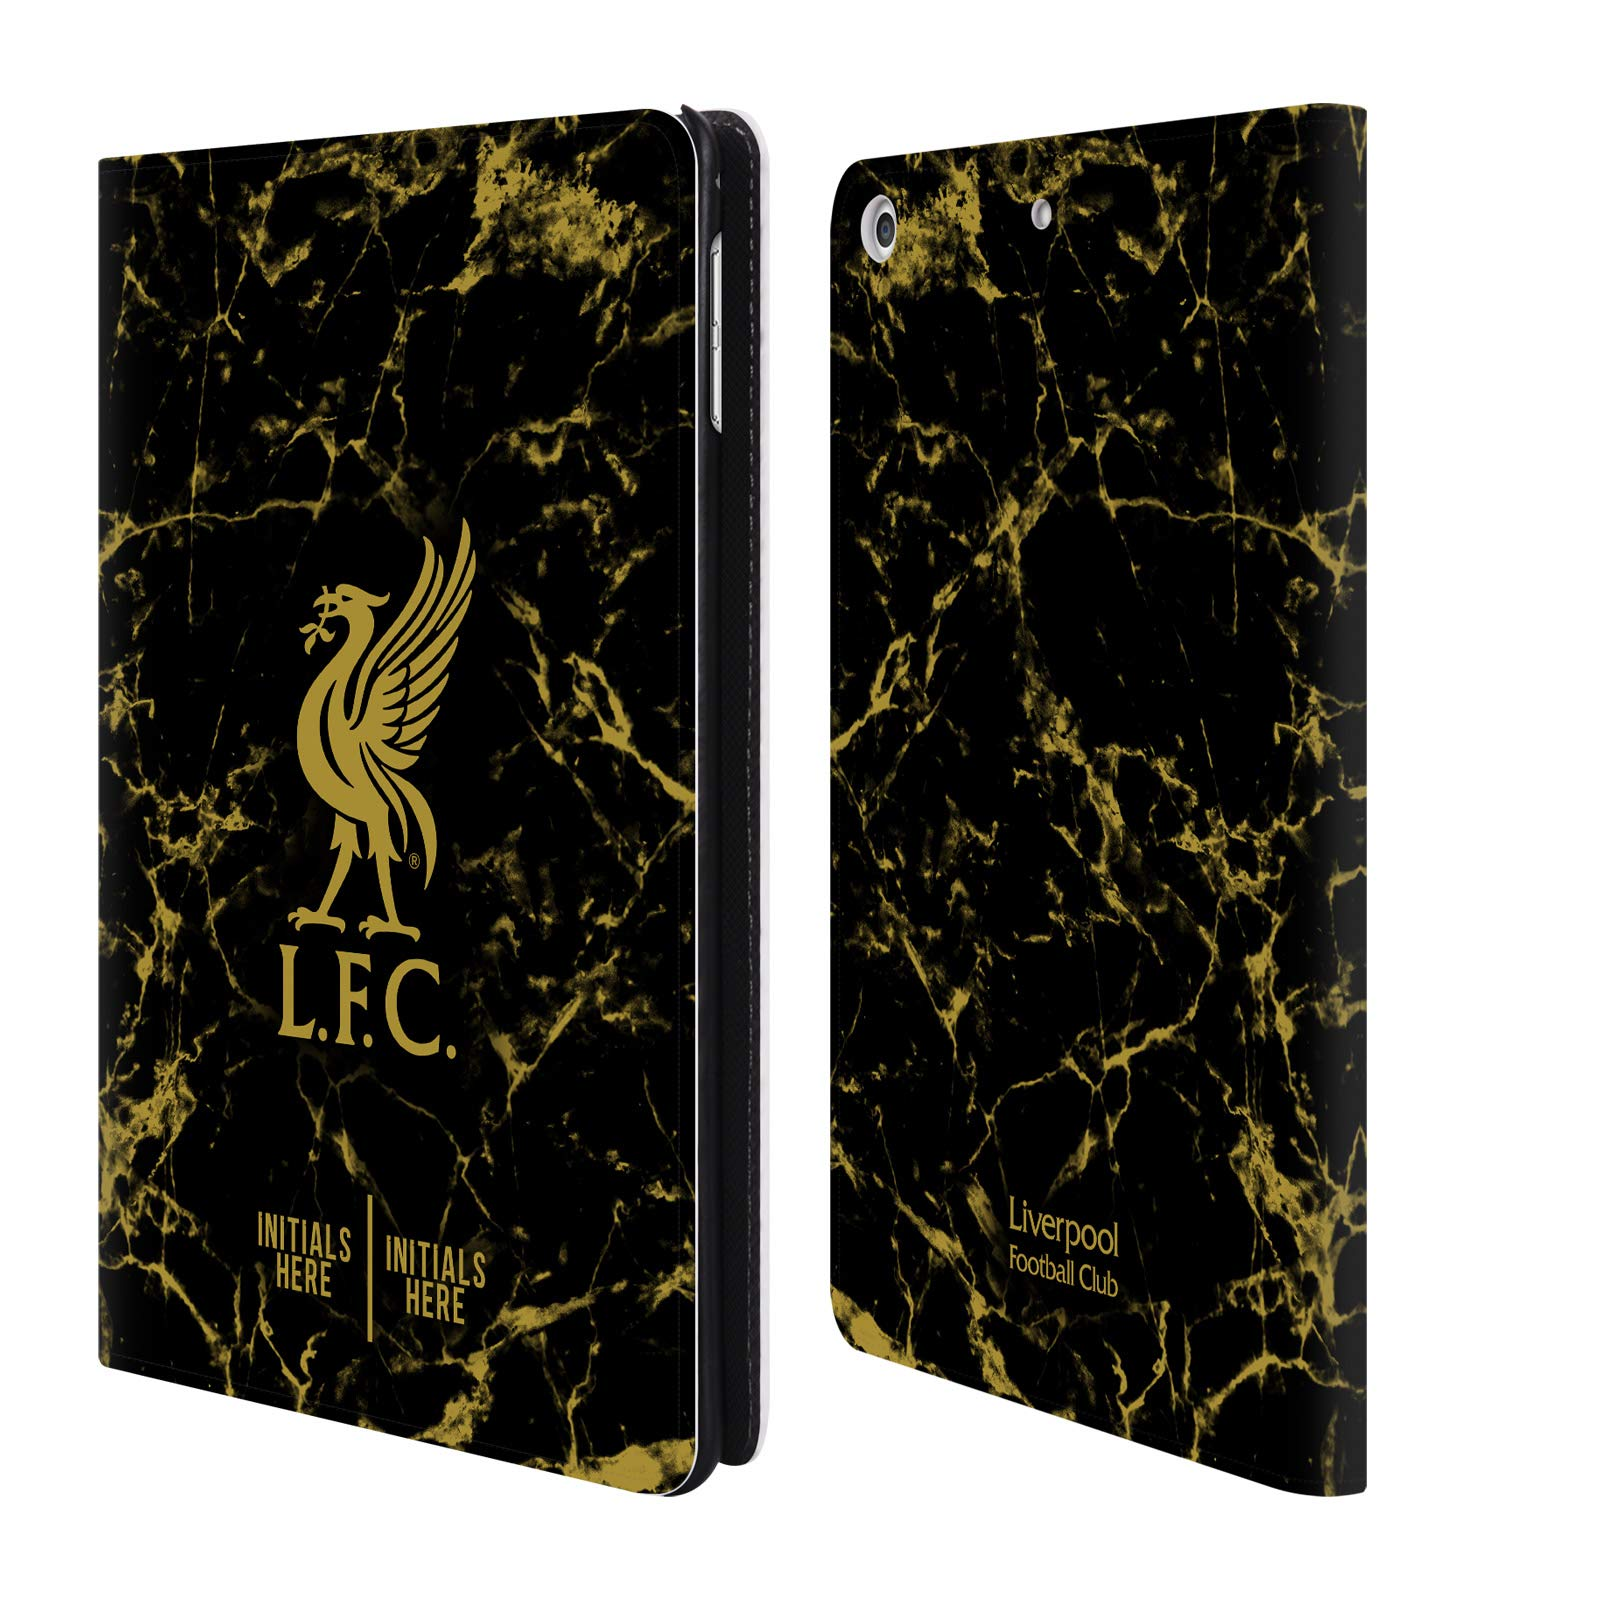 Custom Customized Personalized Liverpool Football Club Black Marble 2018/19 PU Leather Book Wallet Case Cover for iPad Mini 4